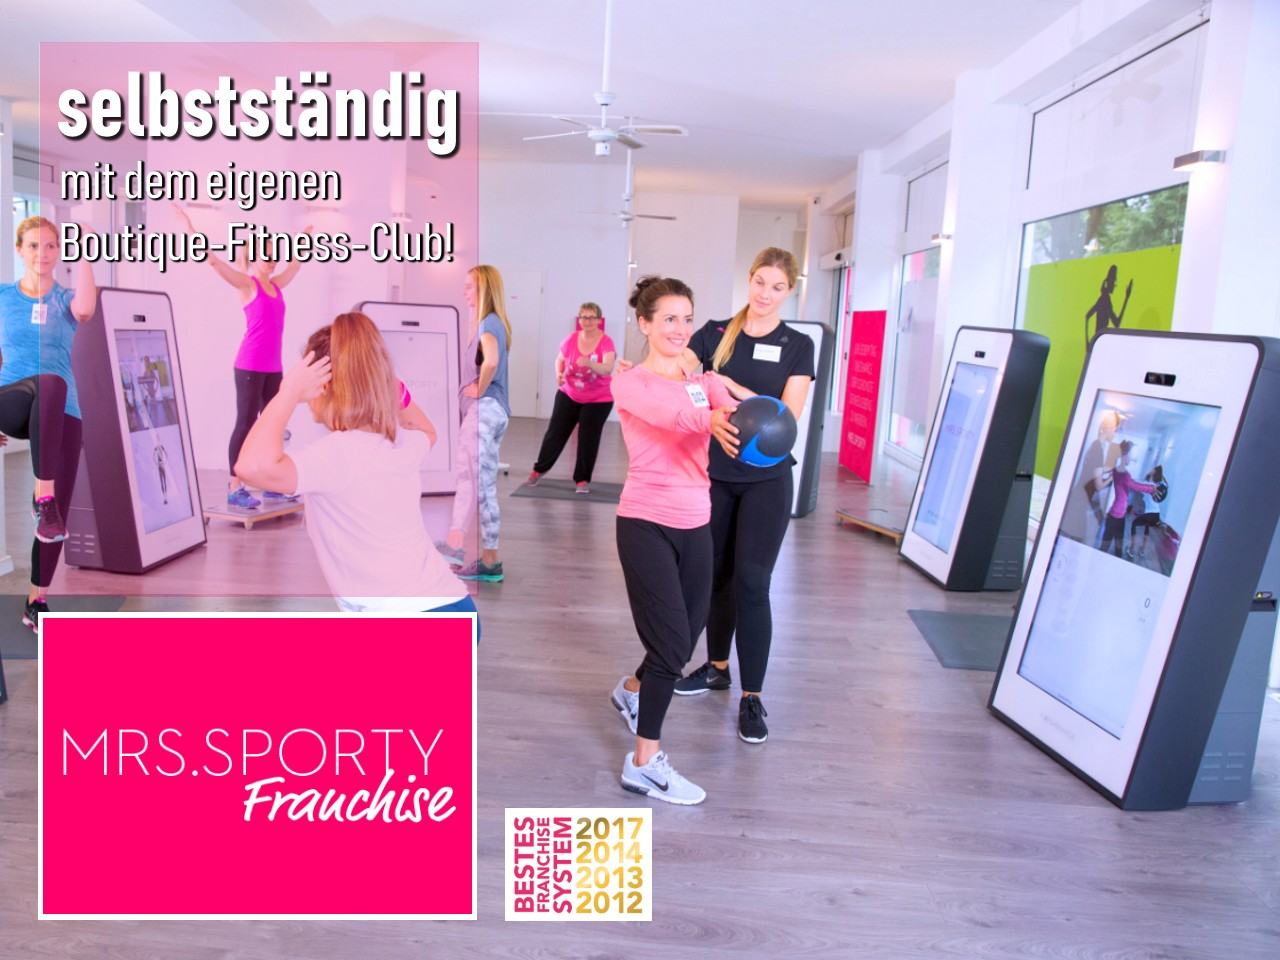 Mrs Sporty Fitness Boutique Franchise für Frauen